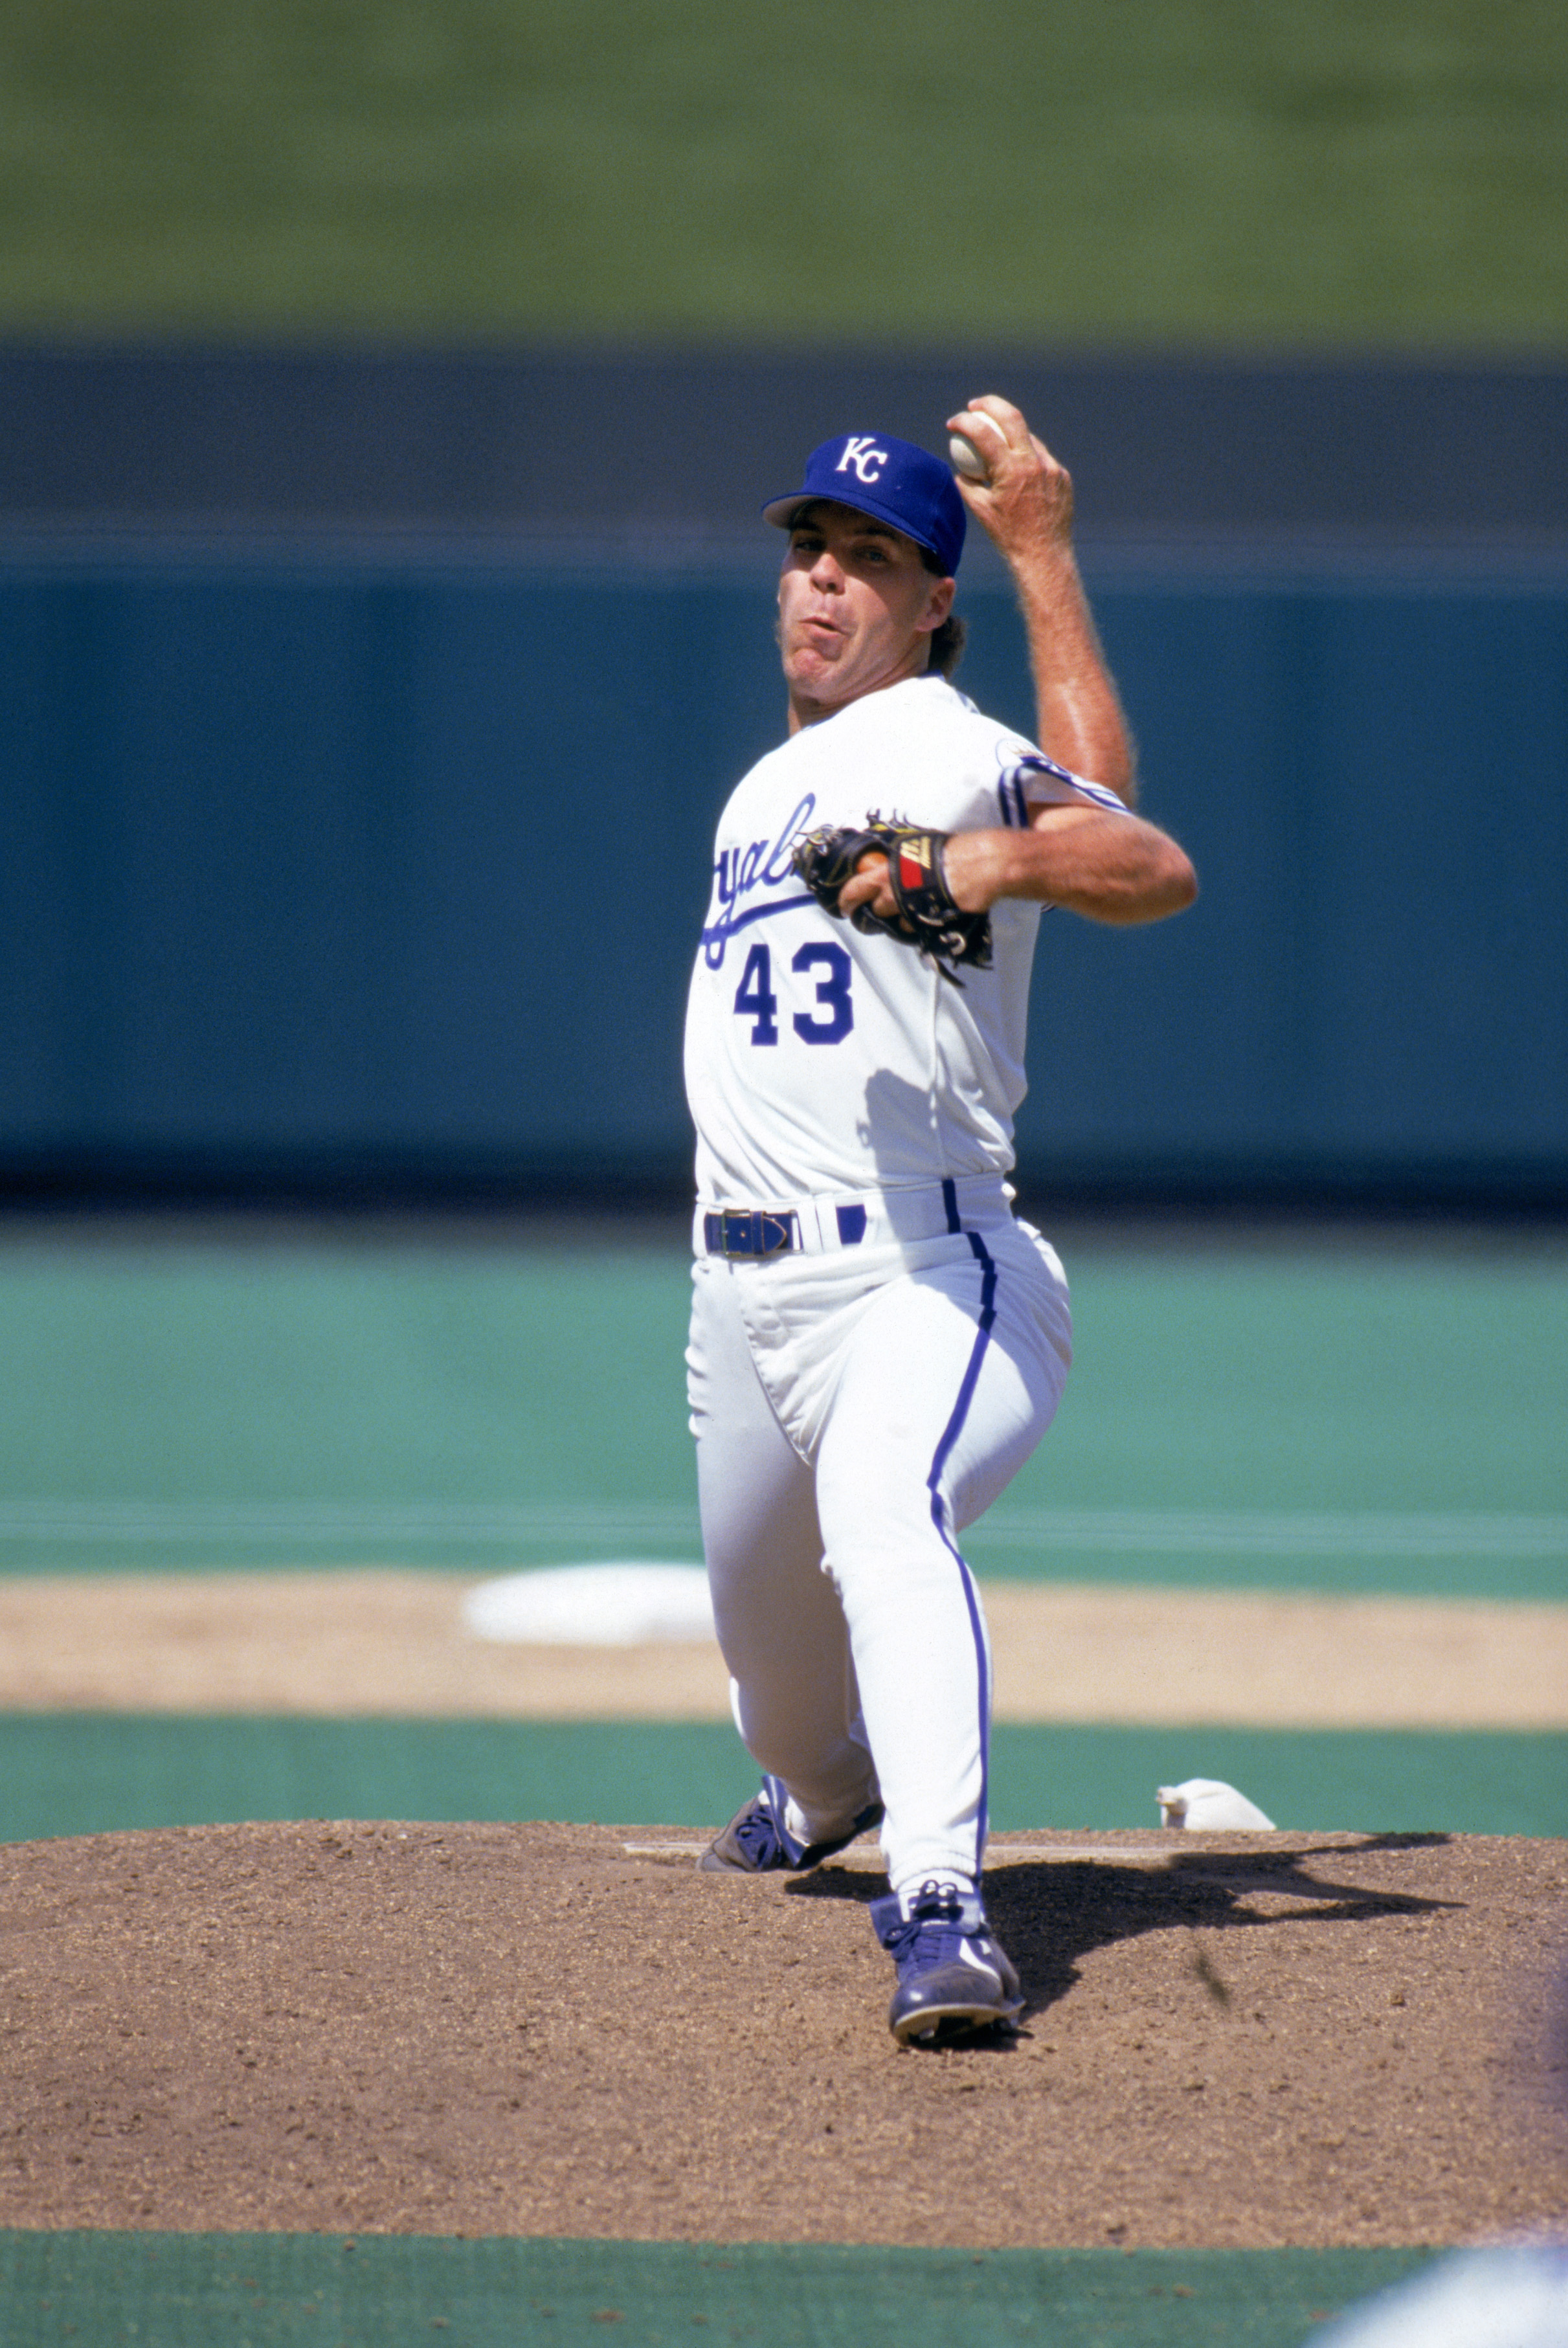 KANSAS CITY, MO - 1991:  Storm Davis #43 of the Kansas City Royals delivers a pitch during a game in July of 1991 at Royals Stadium in Kansas City, Missouri.  (Photo by Jonathan Daniel/Getty Images)